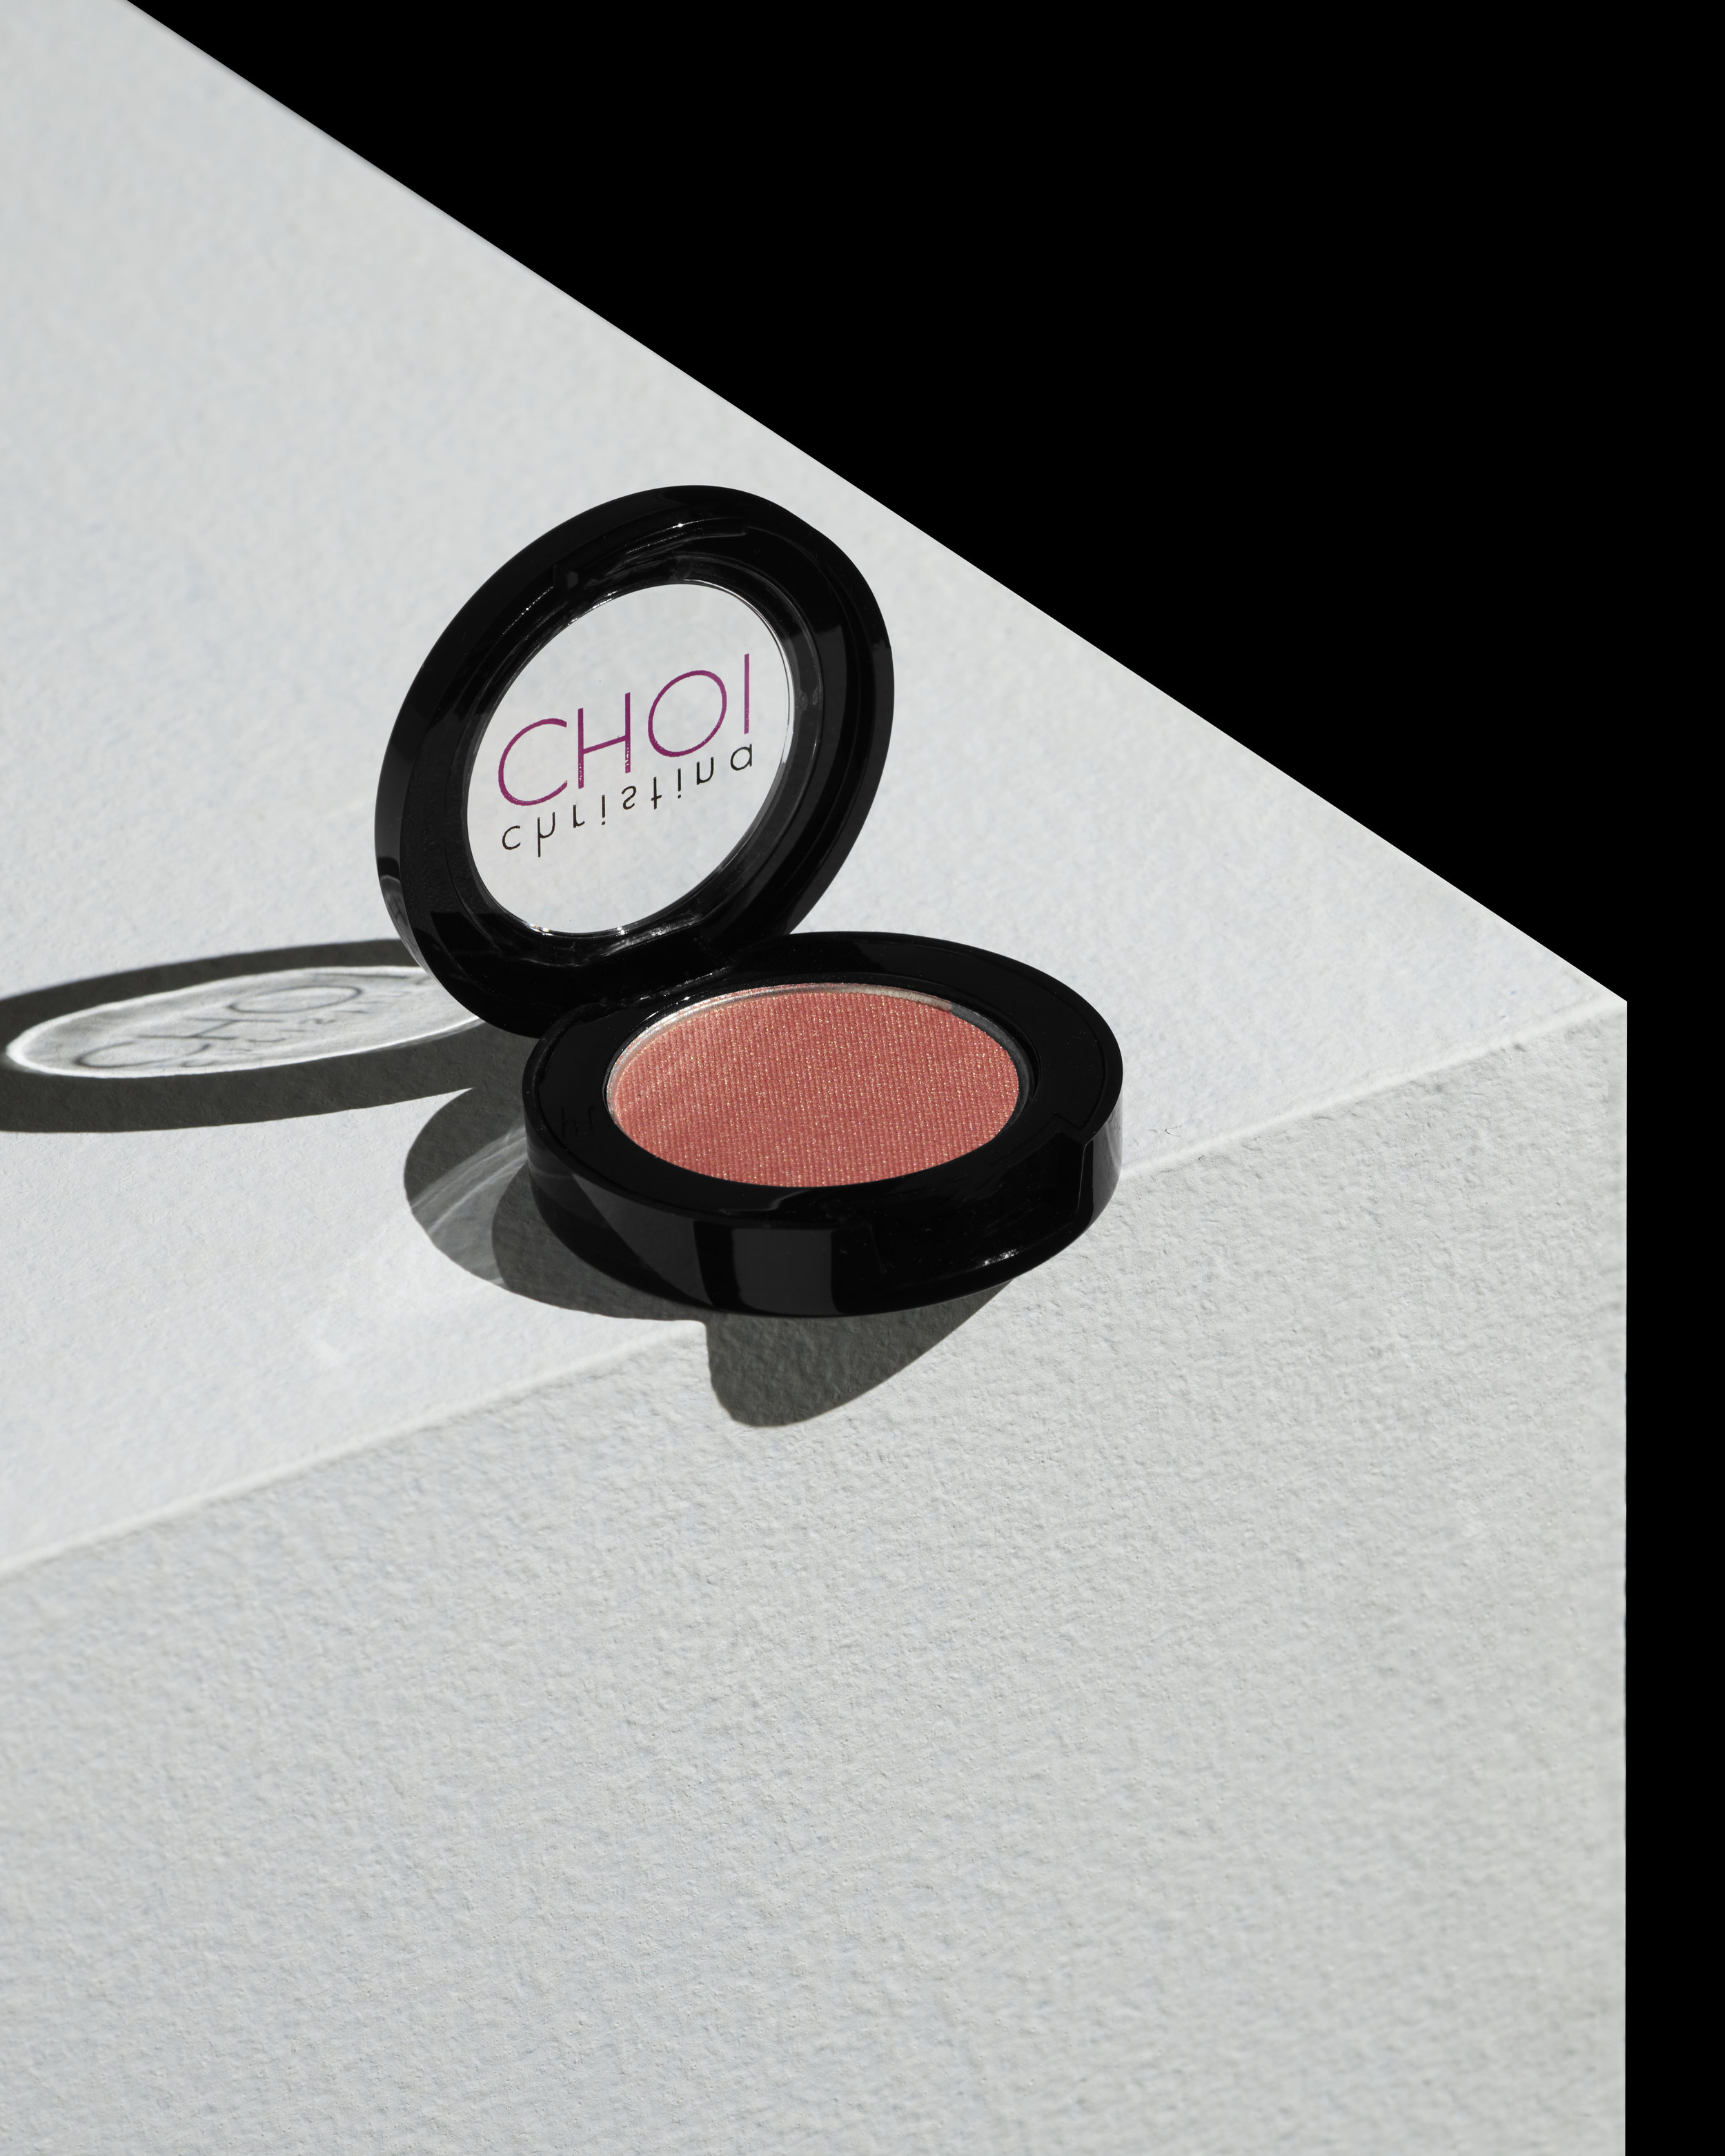 Christina ChoiEyeshadow PodsCreamsicle - You know what colors work for you and you aren't looking to buy palette after palette to find those must-have colors, this is why we love Christina Choi. Her wide variety of eyeshadow pods come in singles and can be mixed and matched to our liking. Not to mention that we can use the pods for different portions of the face. Eyeshadow, blush, liner, brow, the list goes on. We recommend Creamsicle as it's the perfect range of peach and gold. Simple, understated, and a color we come back to over and over again.// Christina Choi, Eyeshadow Pod in Creamsicle, $24